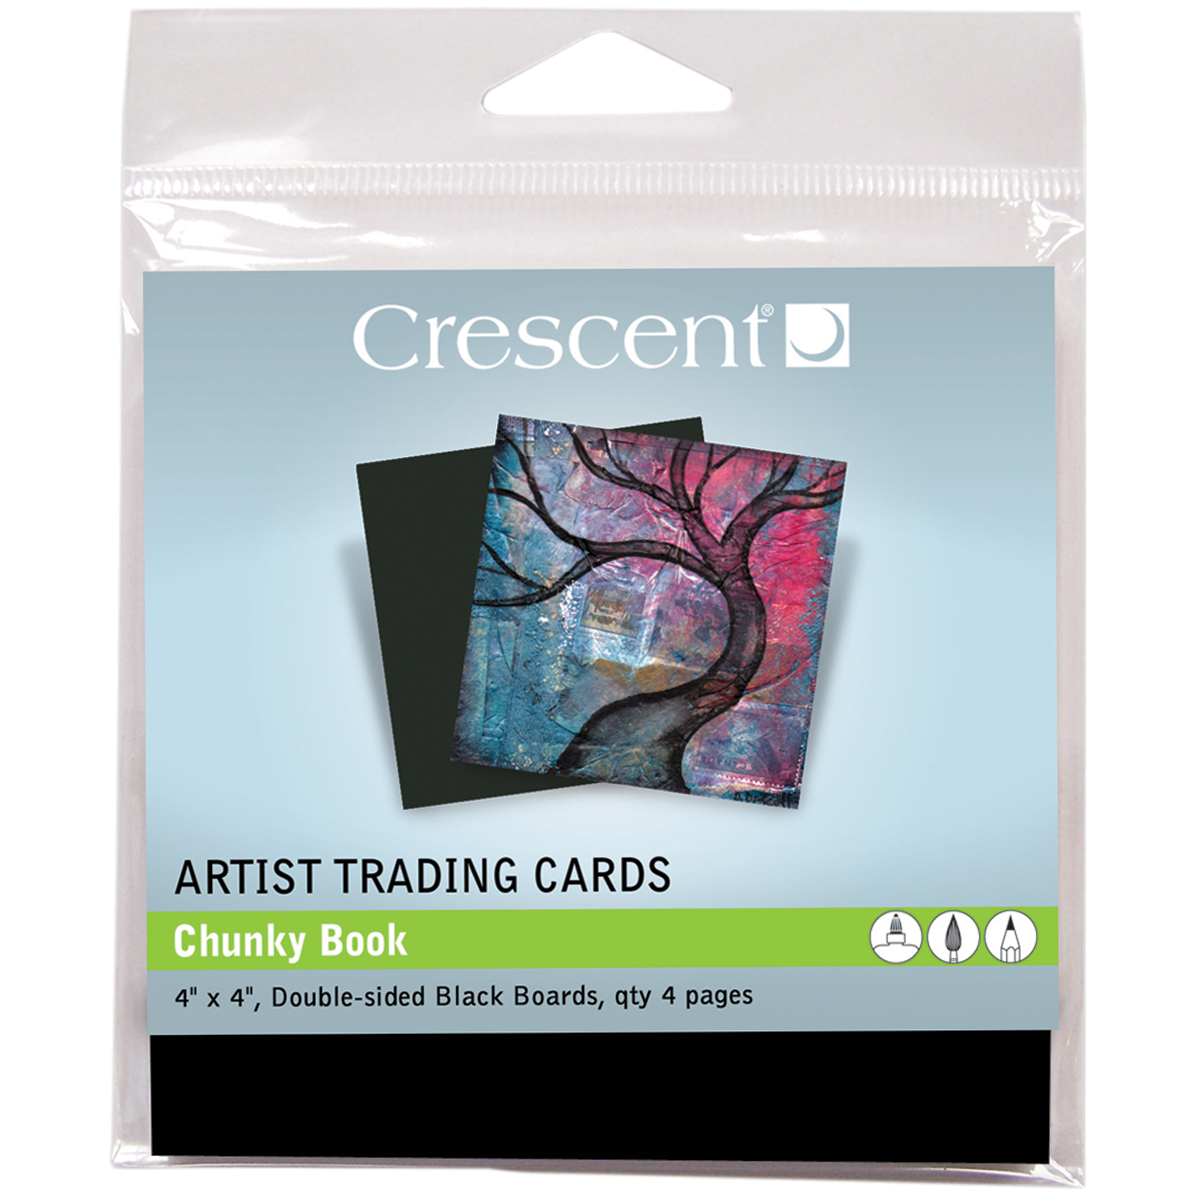 Crescent Artist Trading Cards 4 Inch X 4 Inch 4/Pkg-Chunky Book -